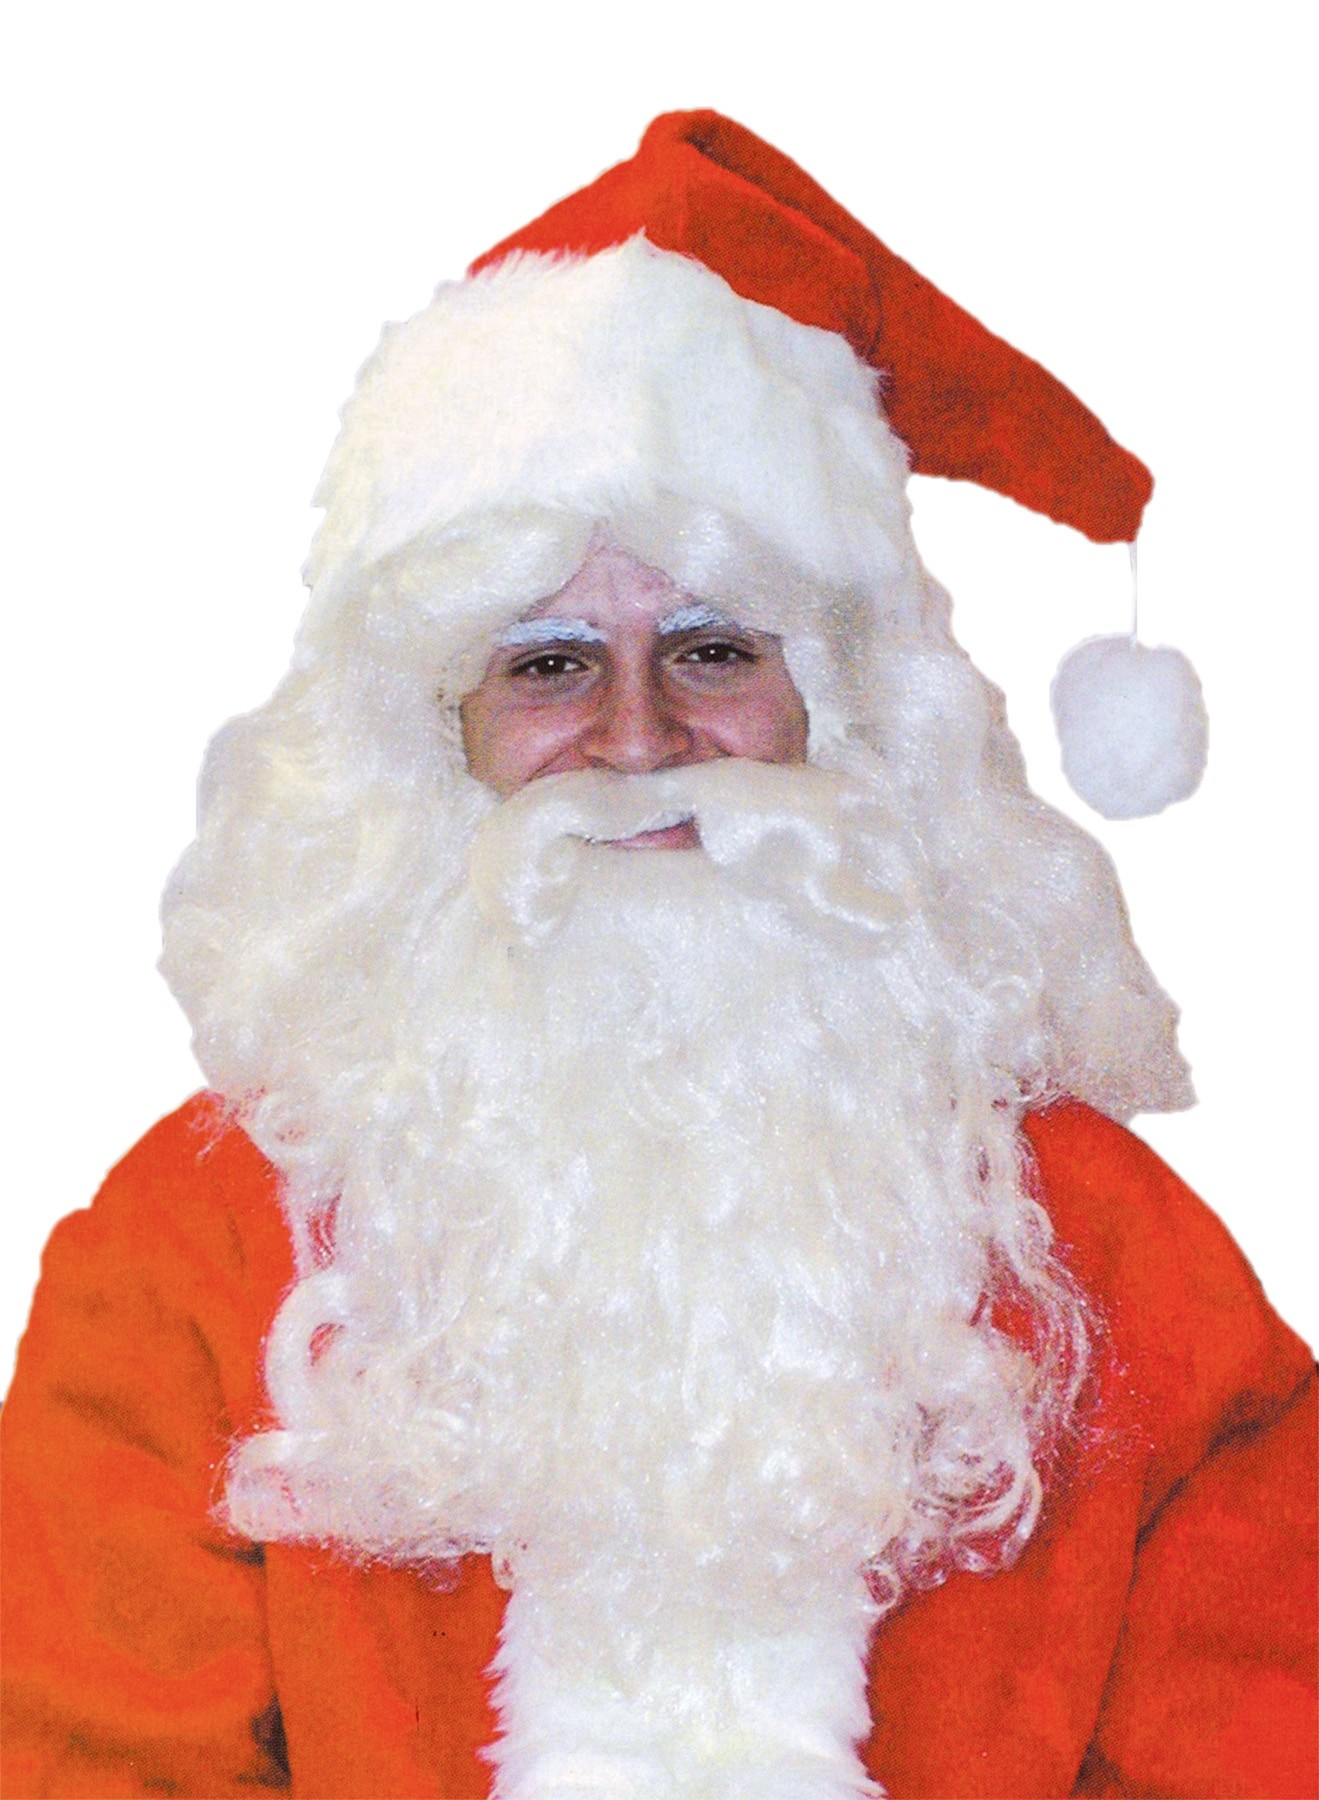 4633400a6df52 Santa Claus Deluxe Wig and Beard Set Christmas Men s Costume Accessory.jpg